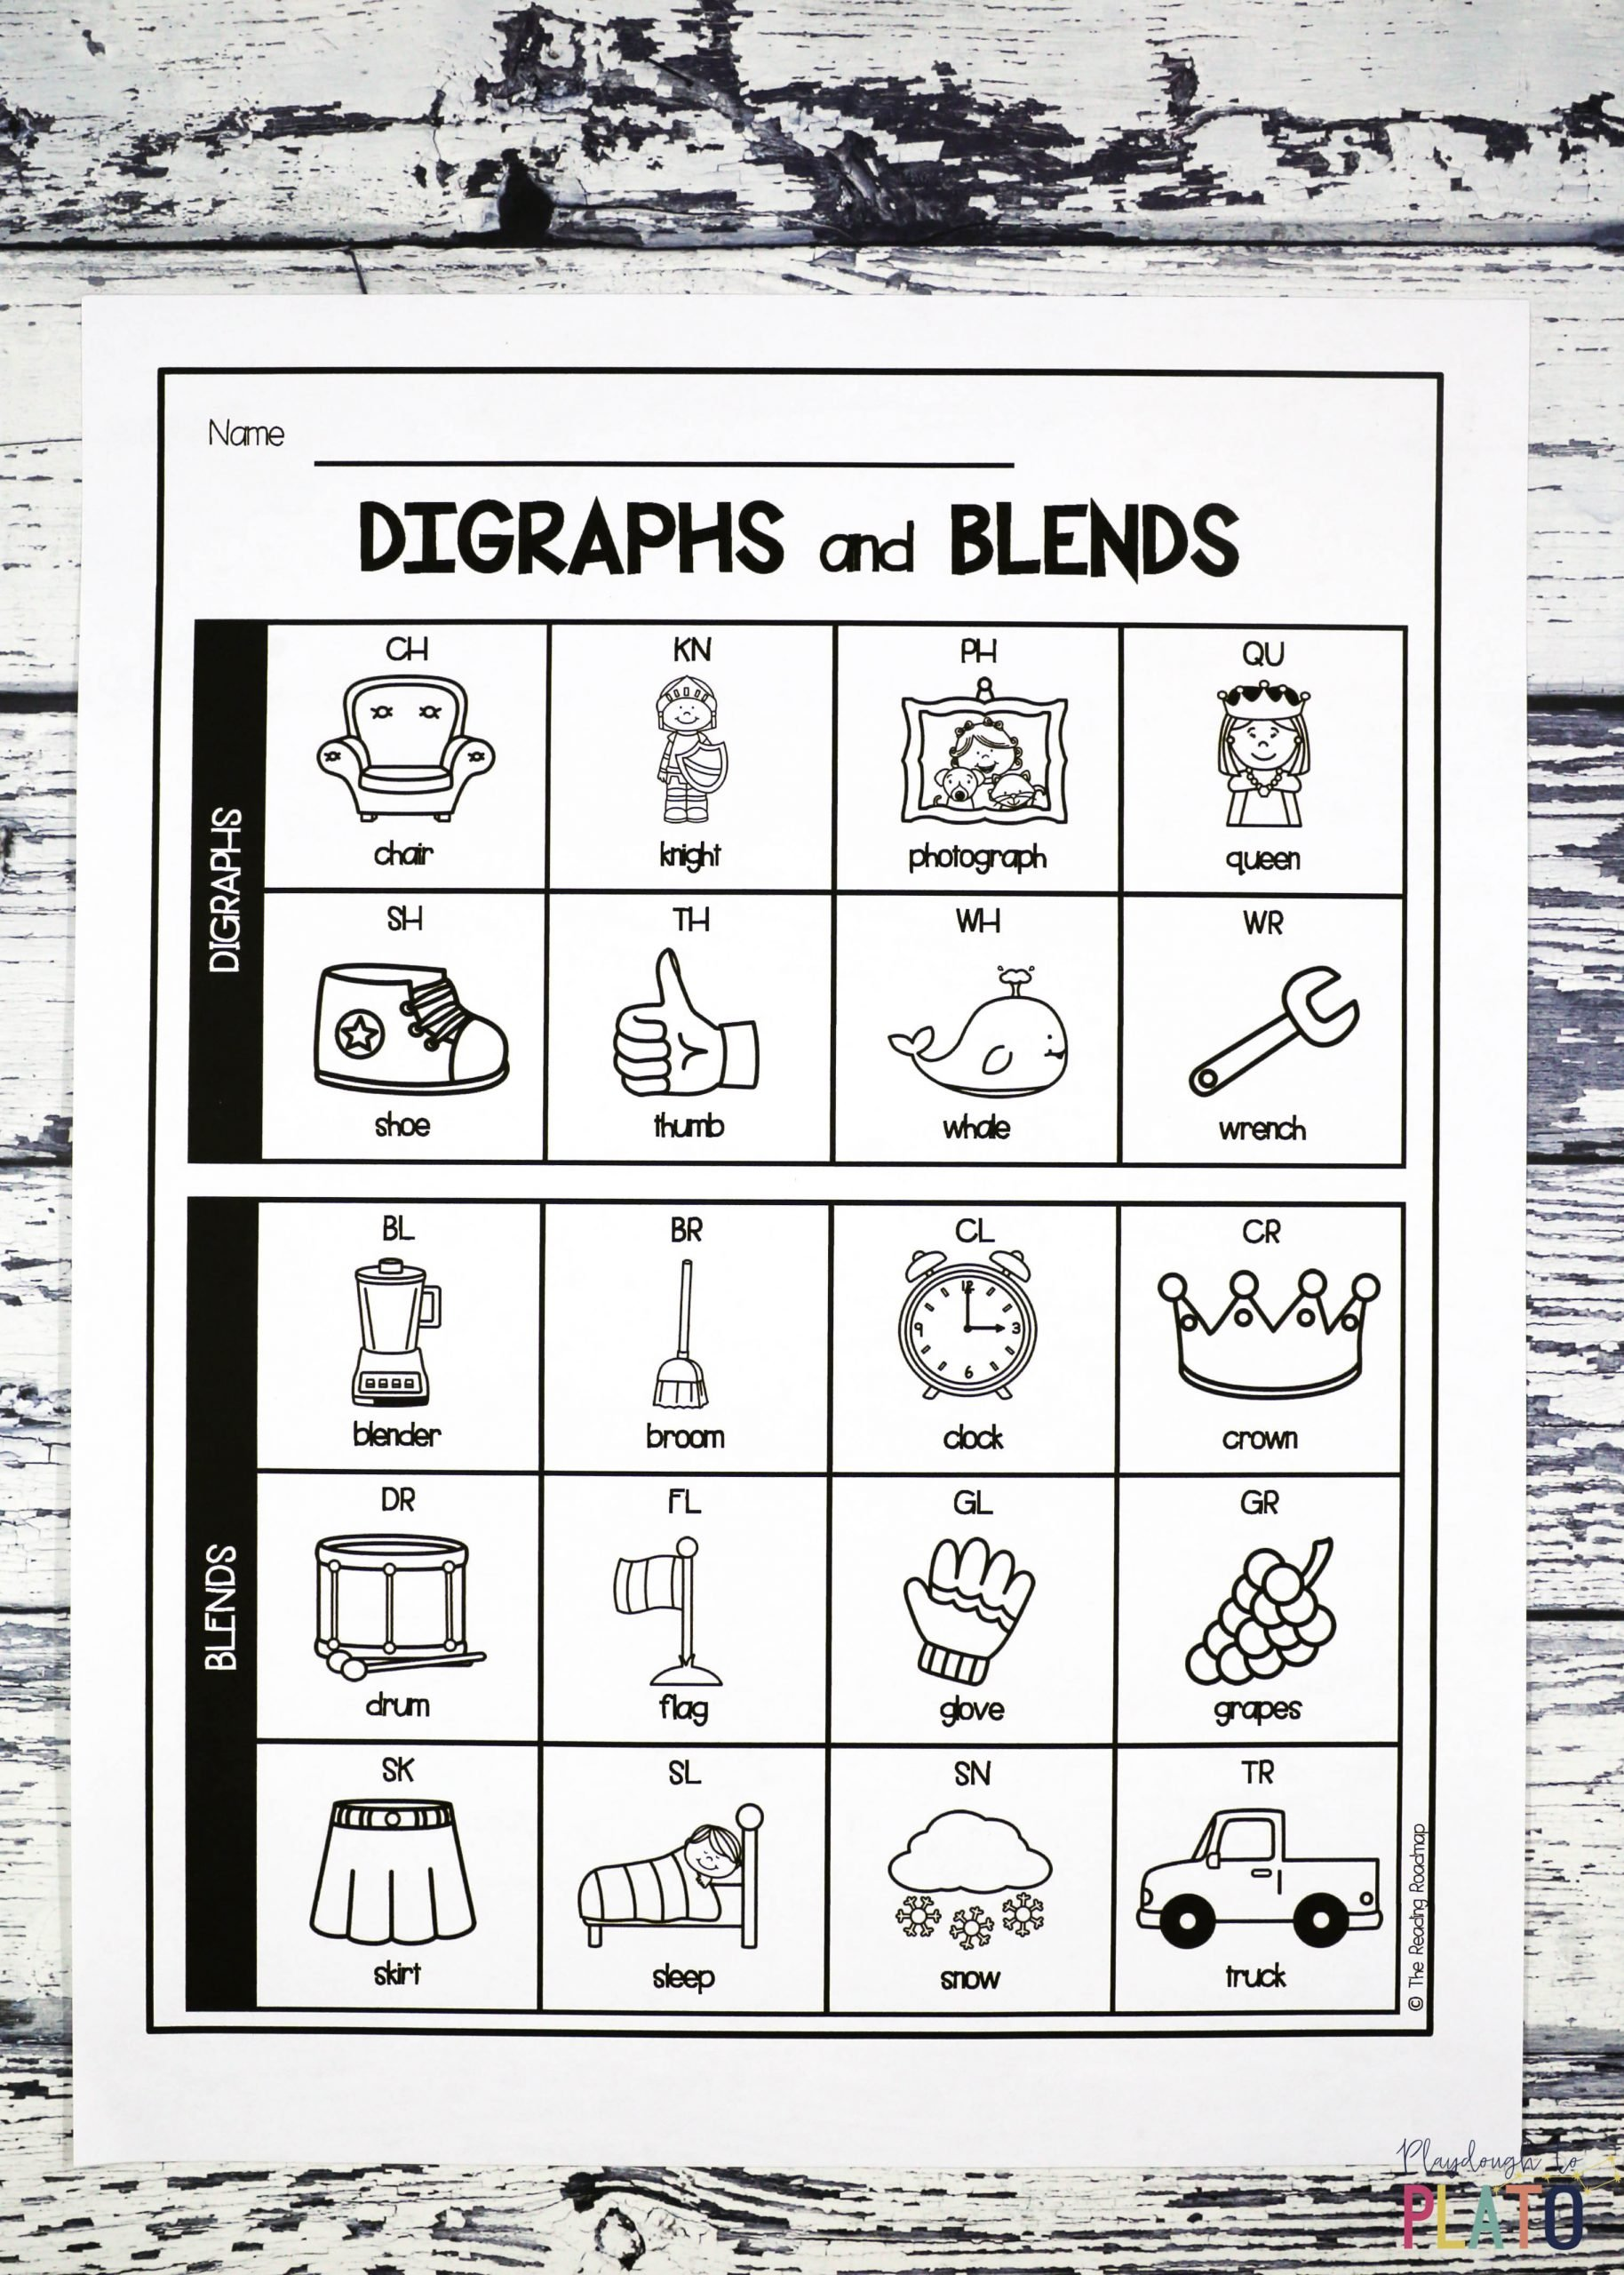 Digraphs and Blends Chart 4025